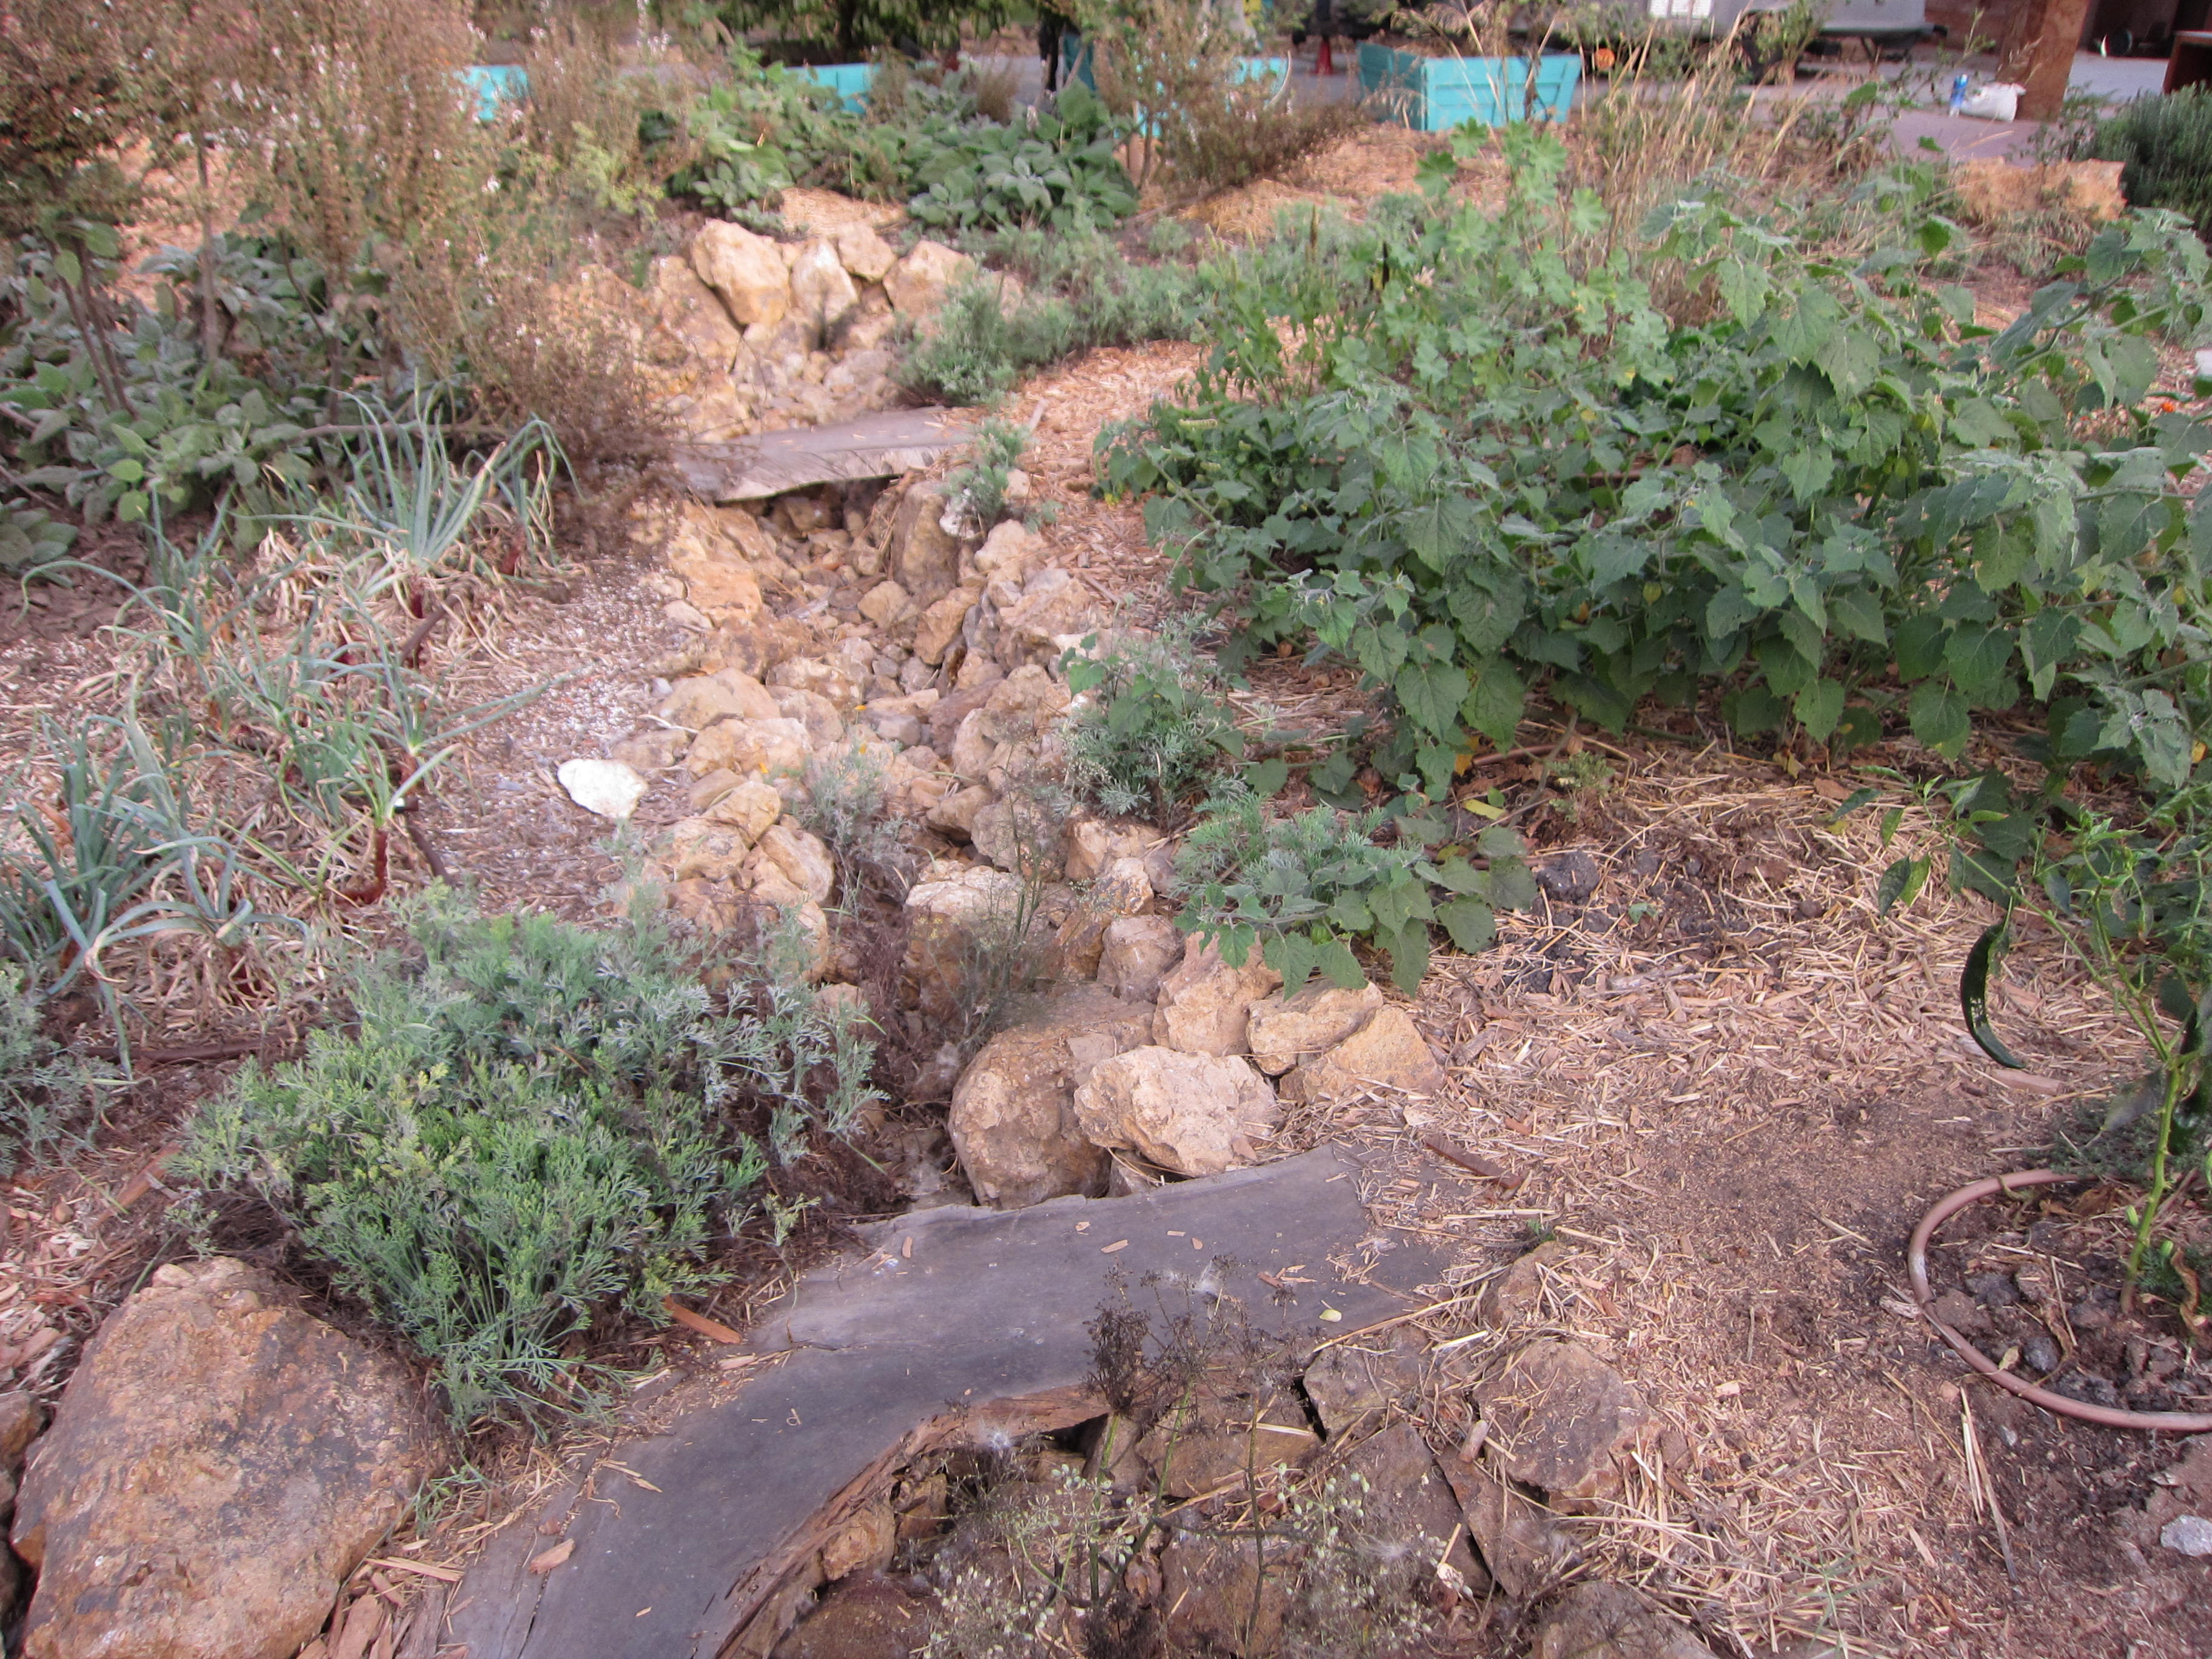 A bioswale captures water when it rains. The dry garden surrounding it soaks up water during the rainy season to survive the rest of the year.